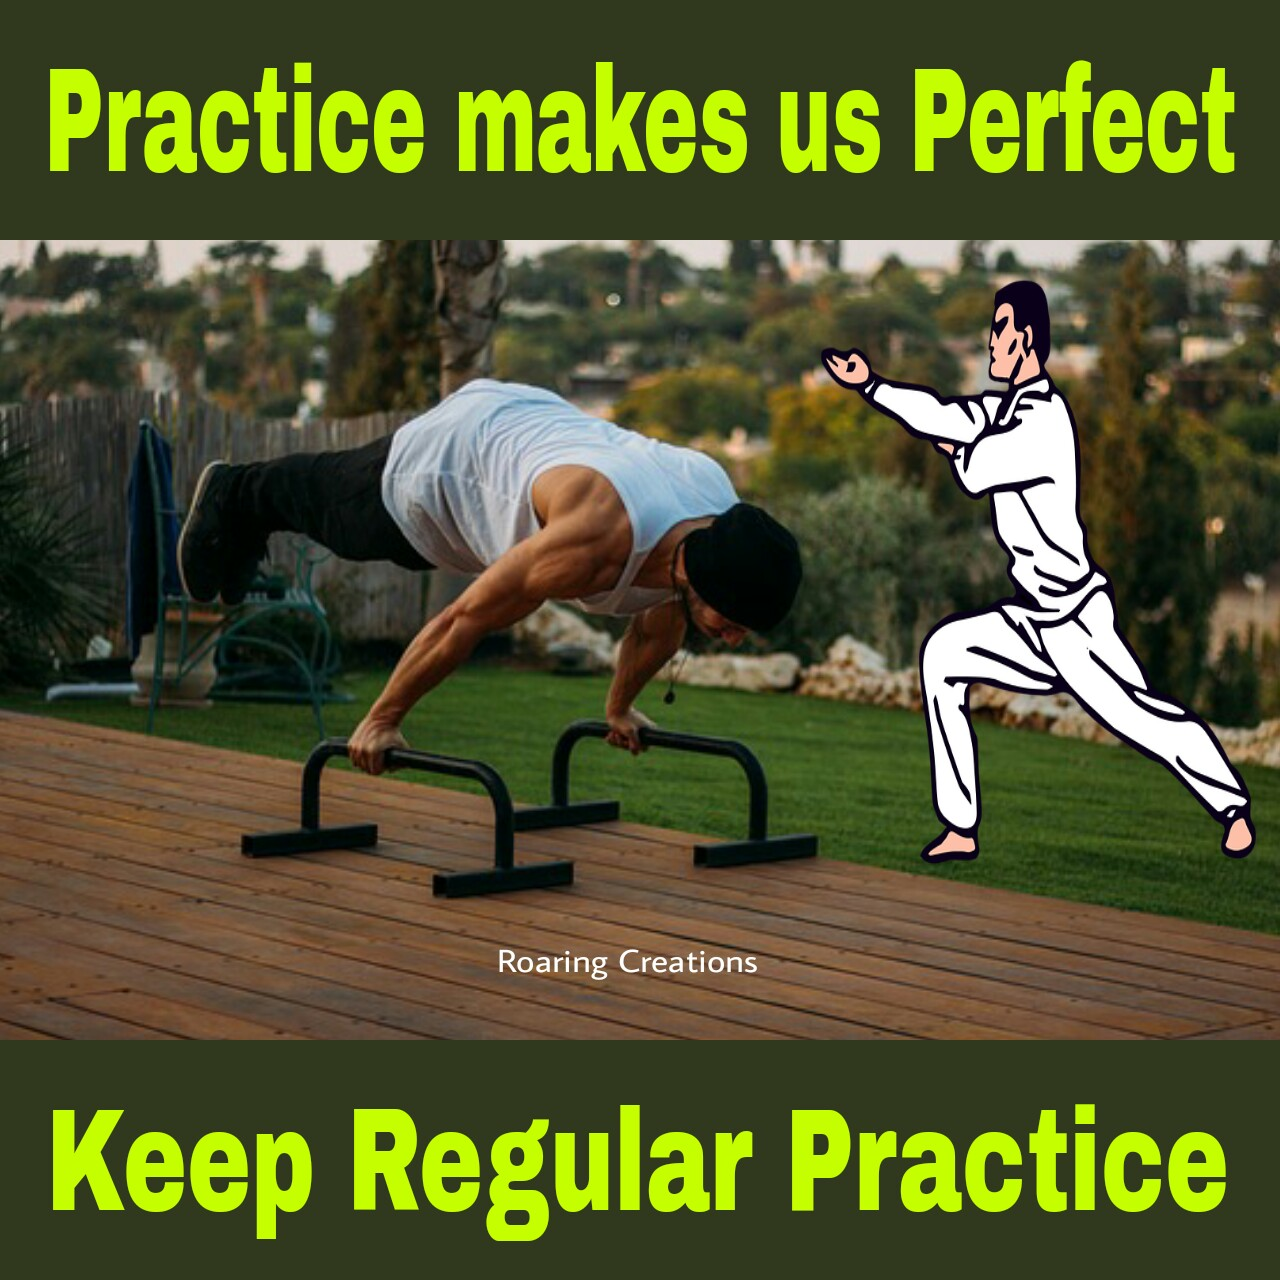 Practice makes us perfect